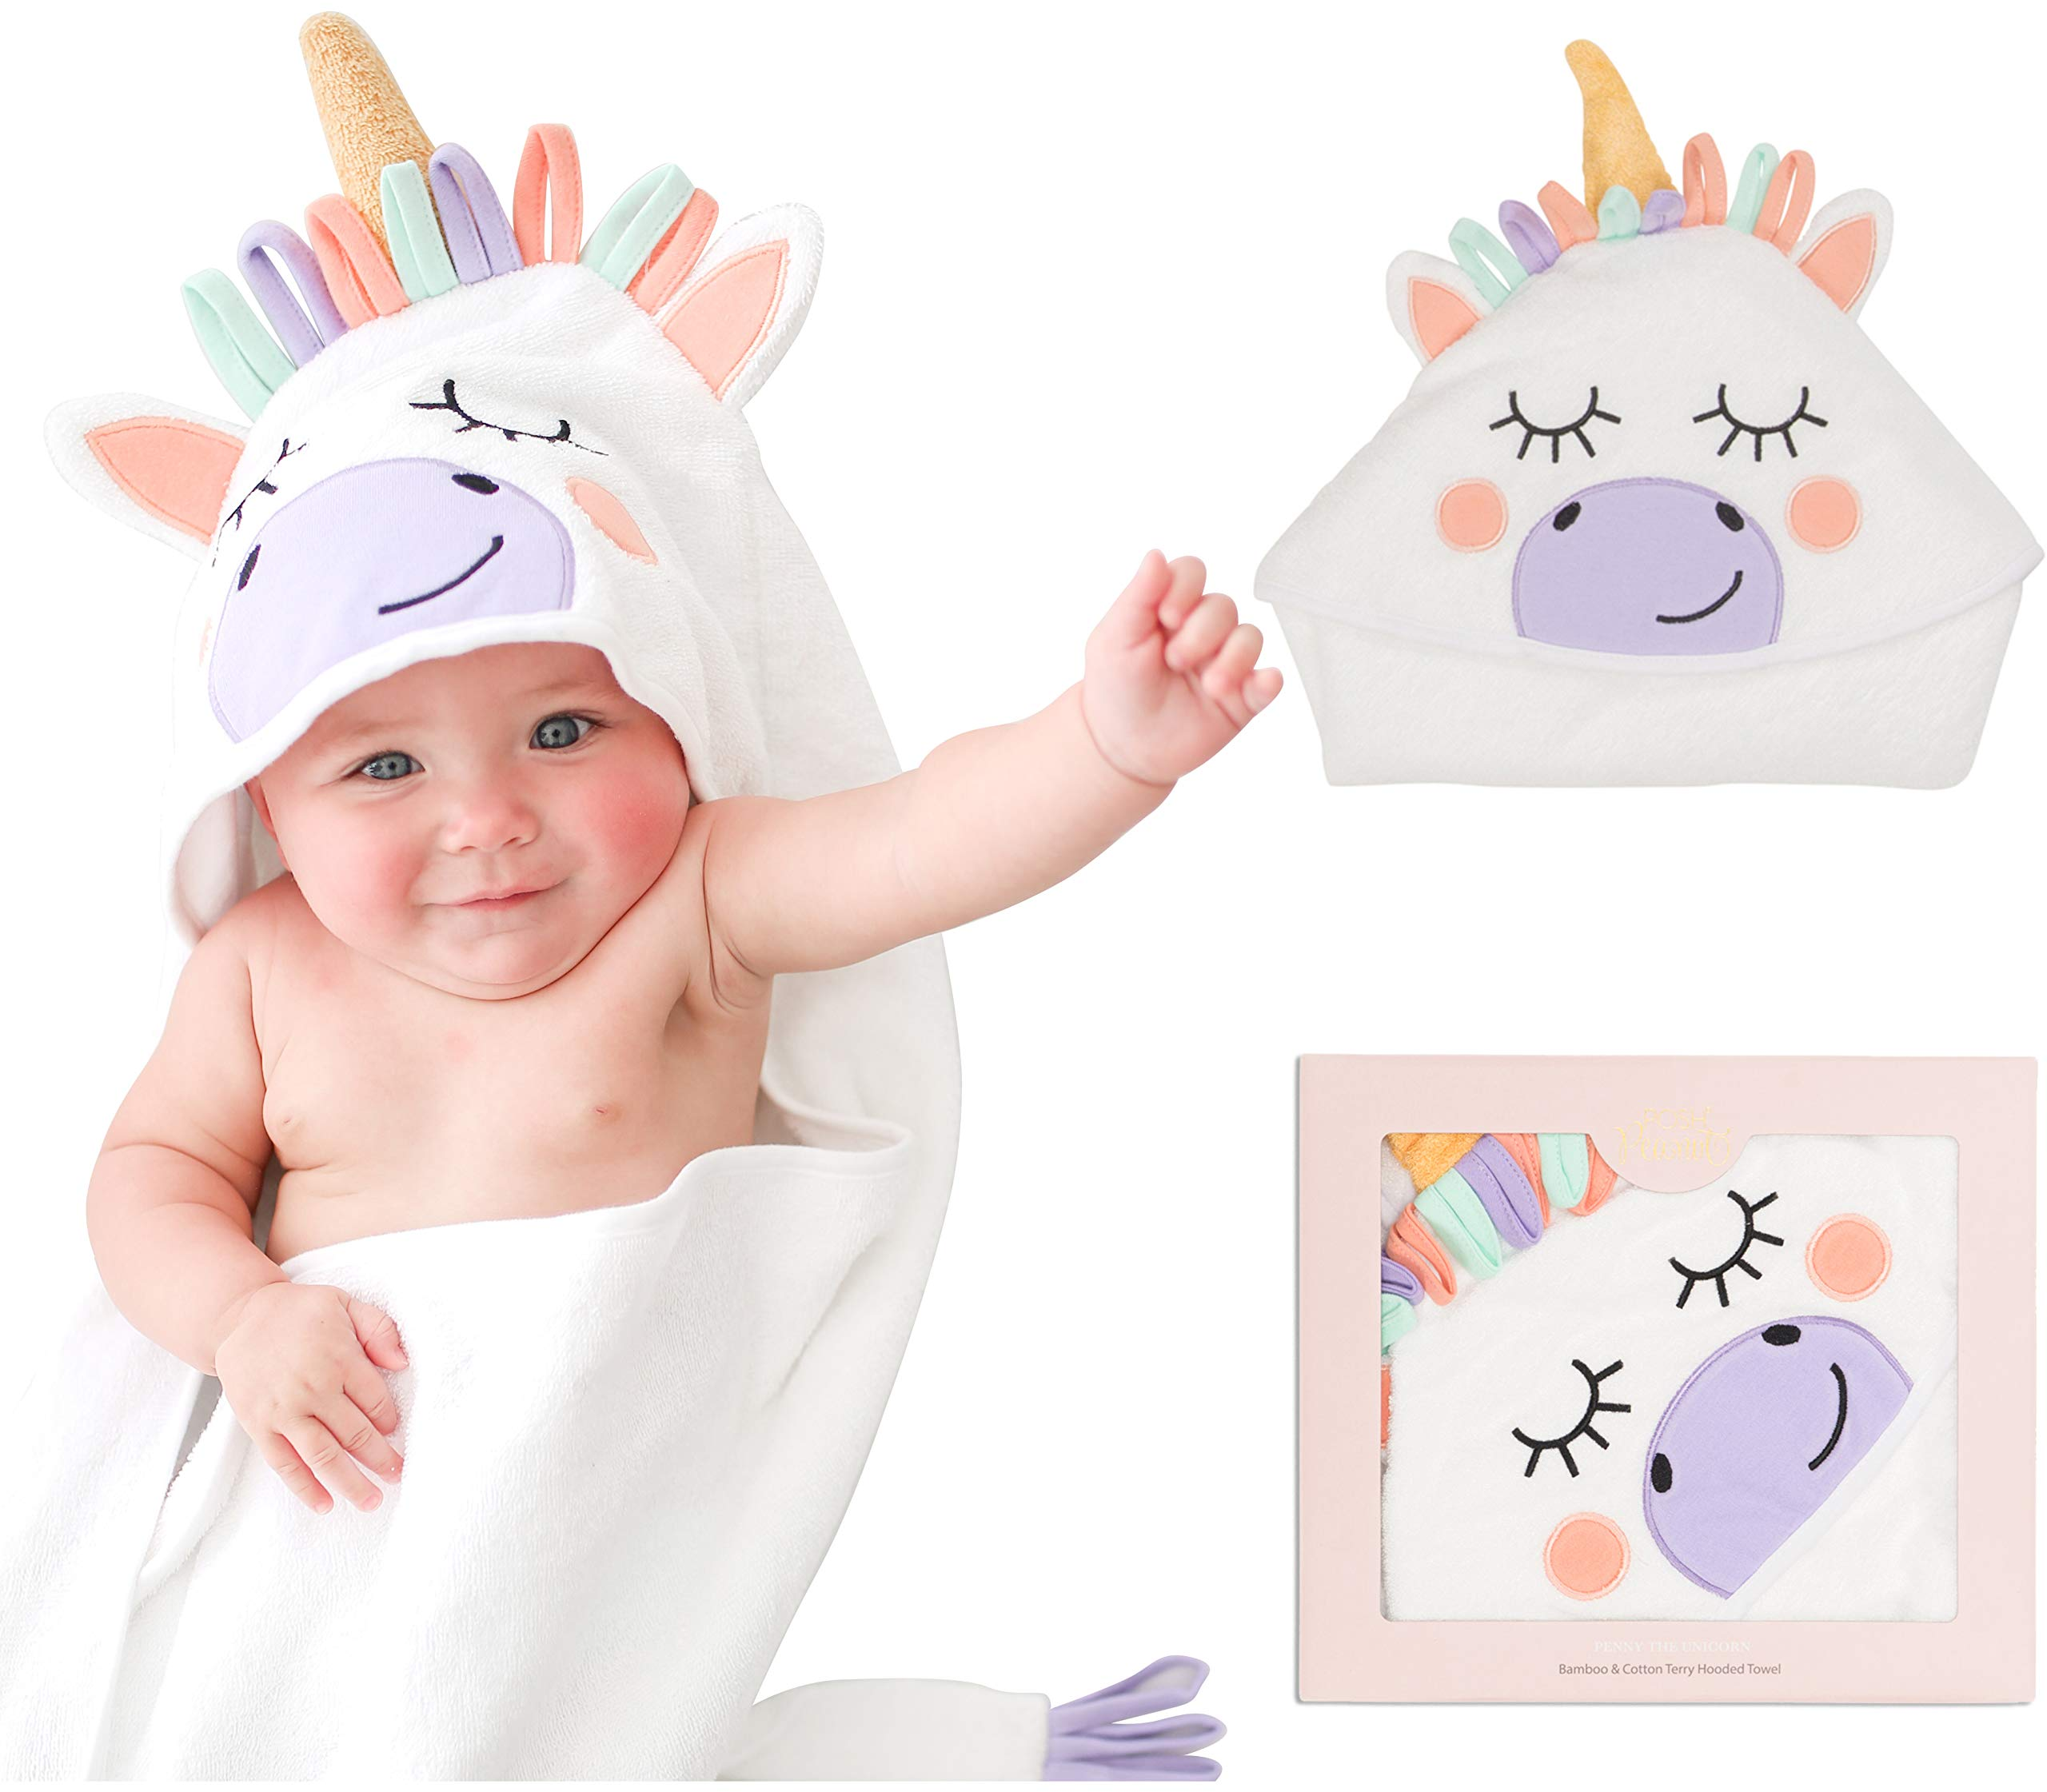 Posh Peanut Baby Hooded Towel - Highly Absorbent Cotton Infant Towel for The House, Beach, Pool - Super Soft Newborn Drying Bath Towel - Great Baby Shower Gift Idea (Unicorn)